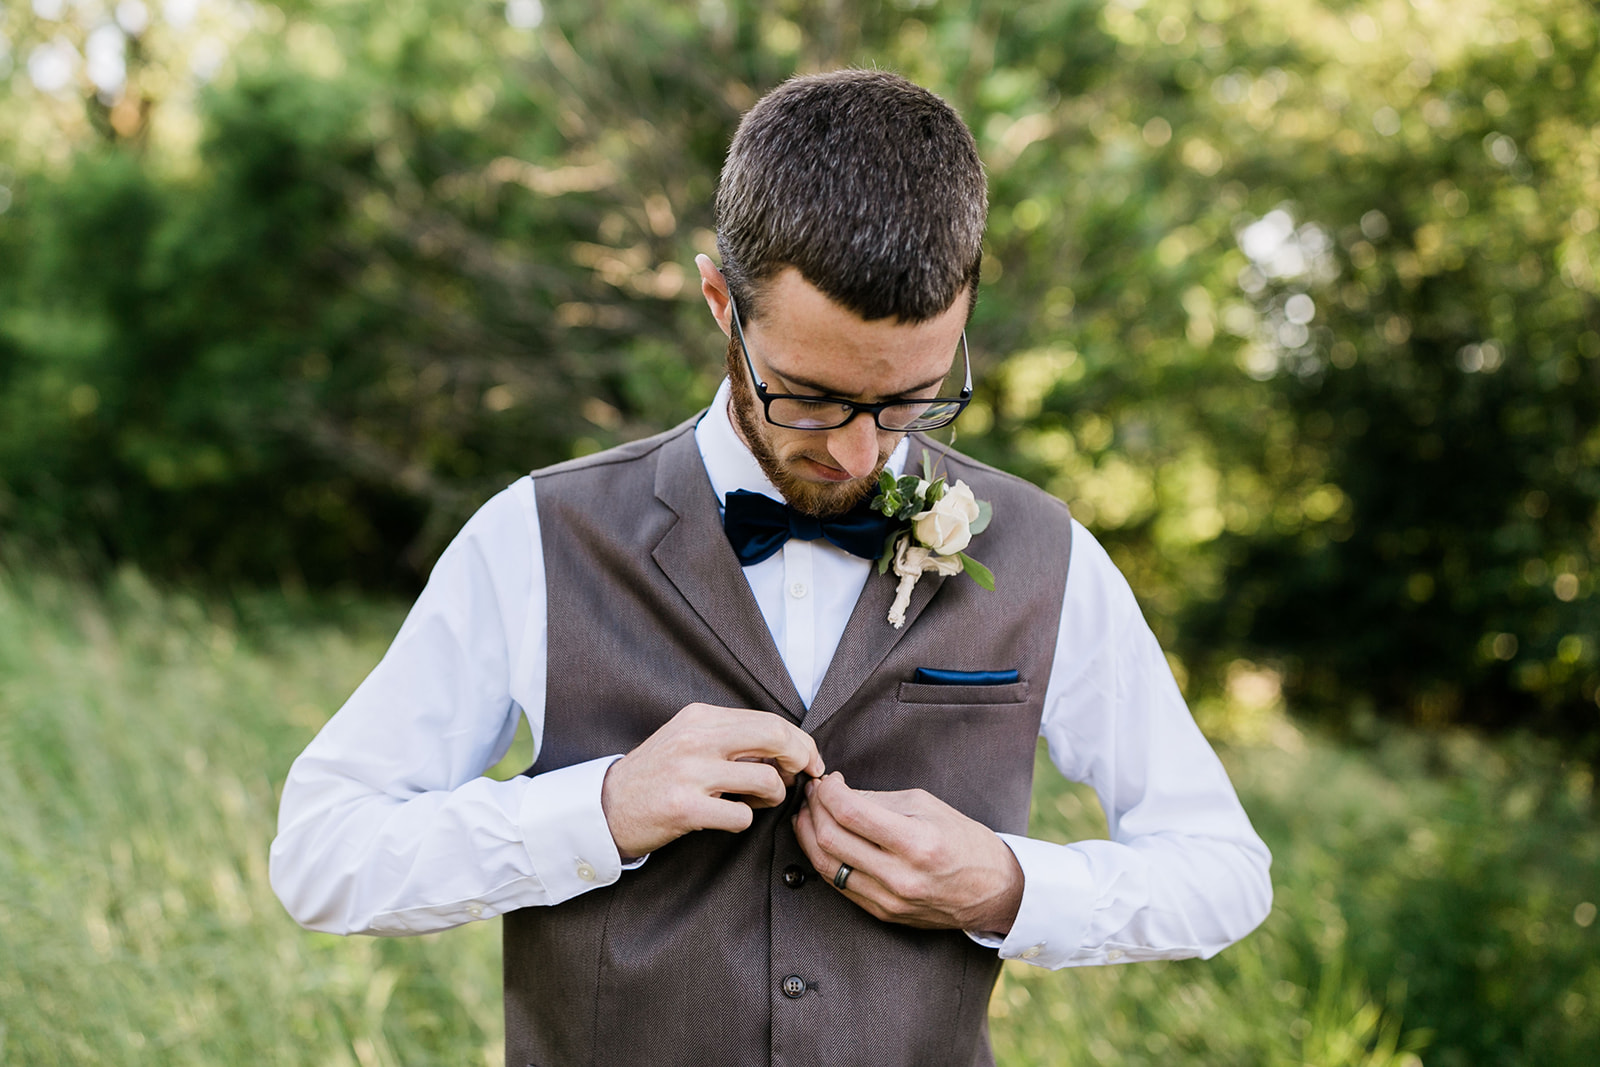 wedding groom in photography shoot in Des Moines Iowa, buttoning his brown tuxedo jacket with rose boutonniere , tied with blush satin ribbon